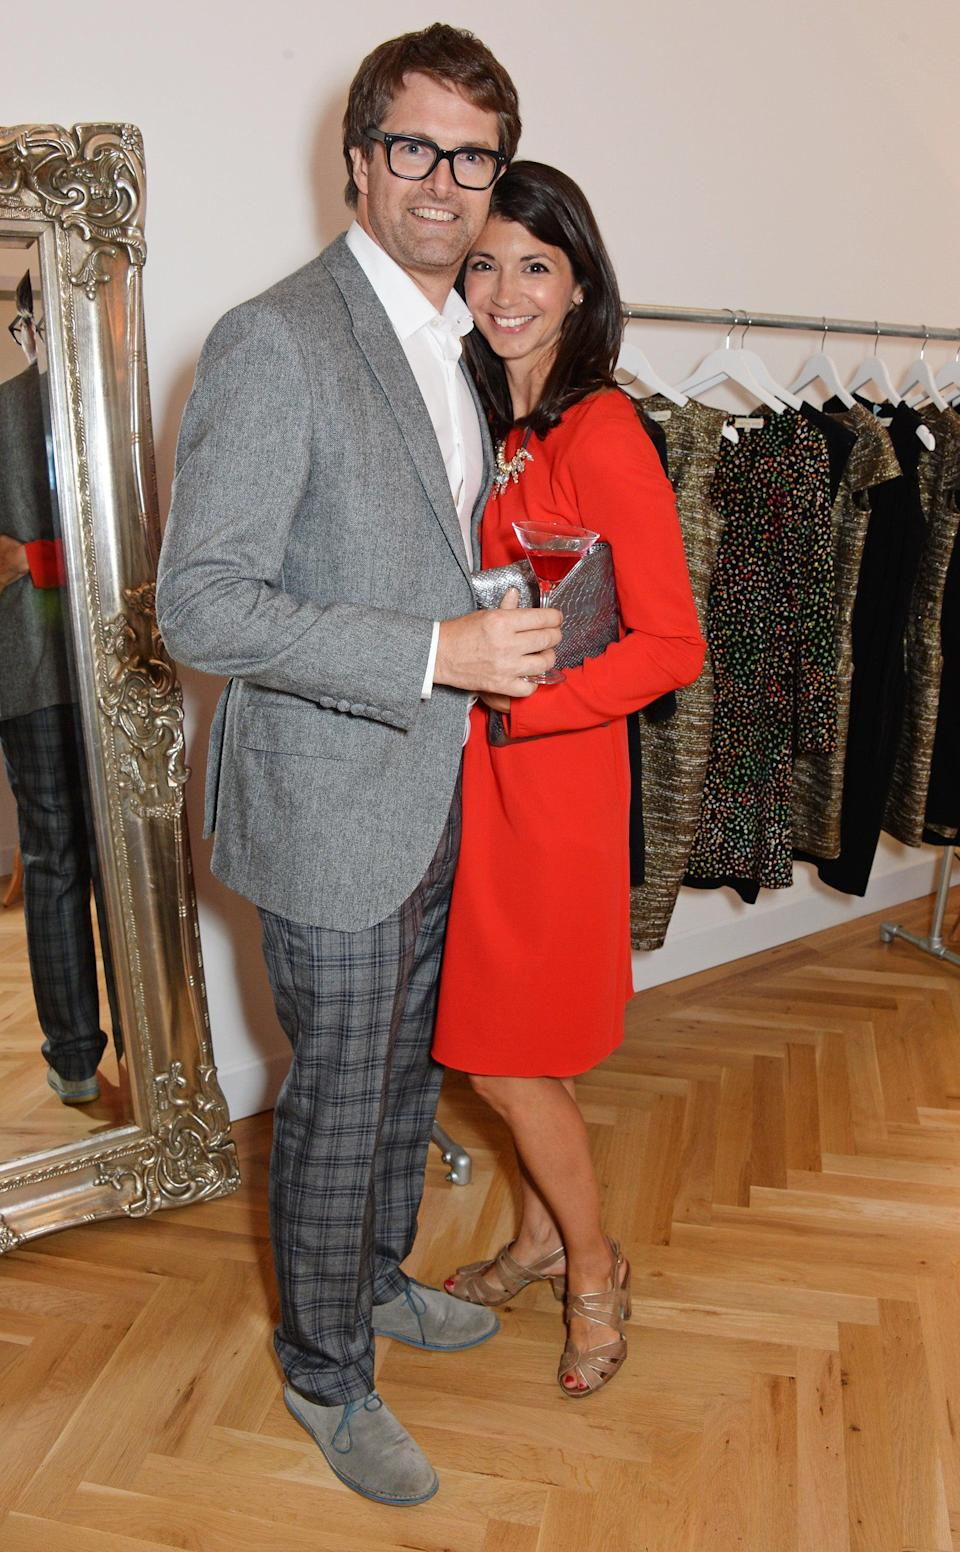 The adviser is married to her multi-millionaire fashion tycoon husband Oliver Tress who founded high street chain Oliver Bonas (David Benett)